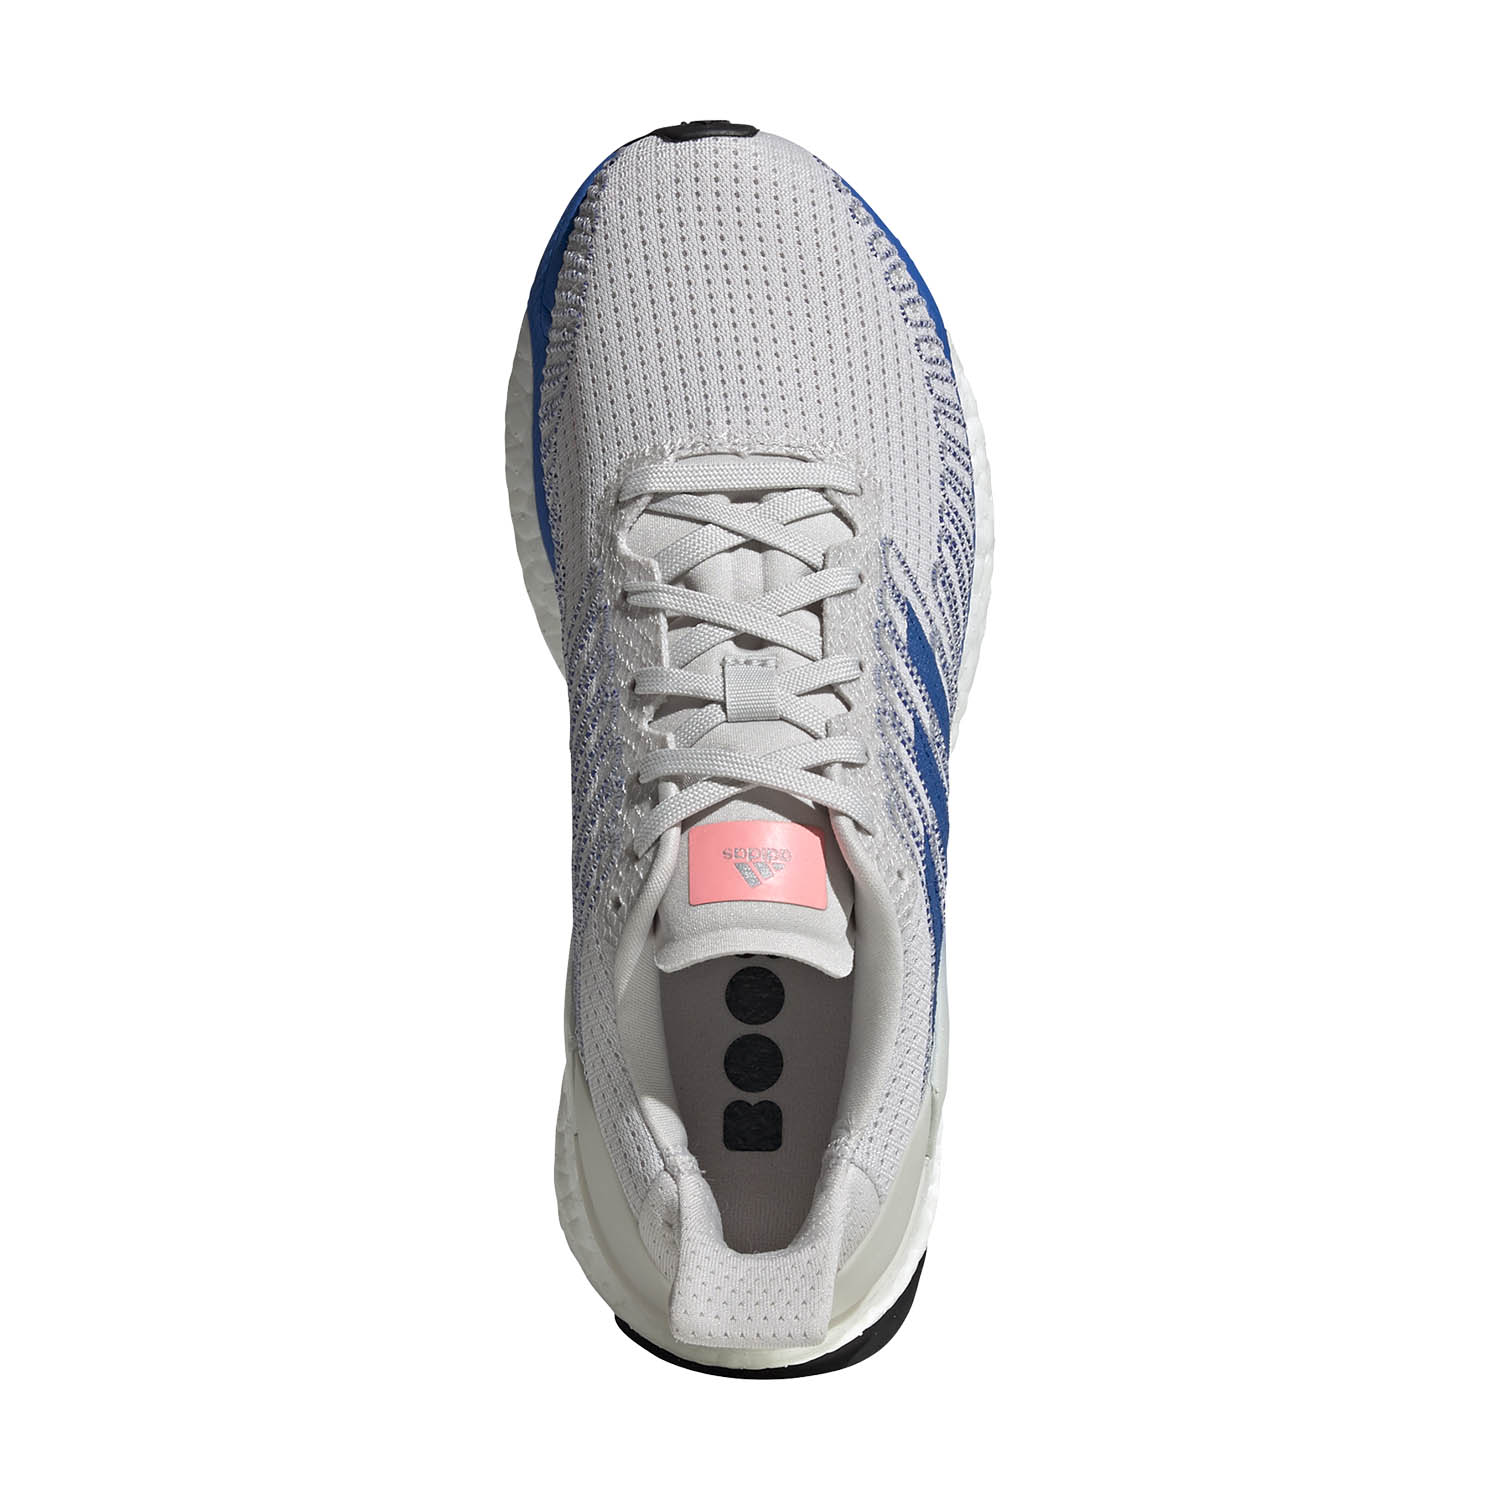 Adidas Solarboost 19 - Grey One F17/Glory Blue/Light Flash Red